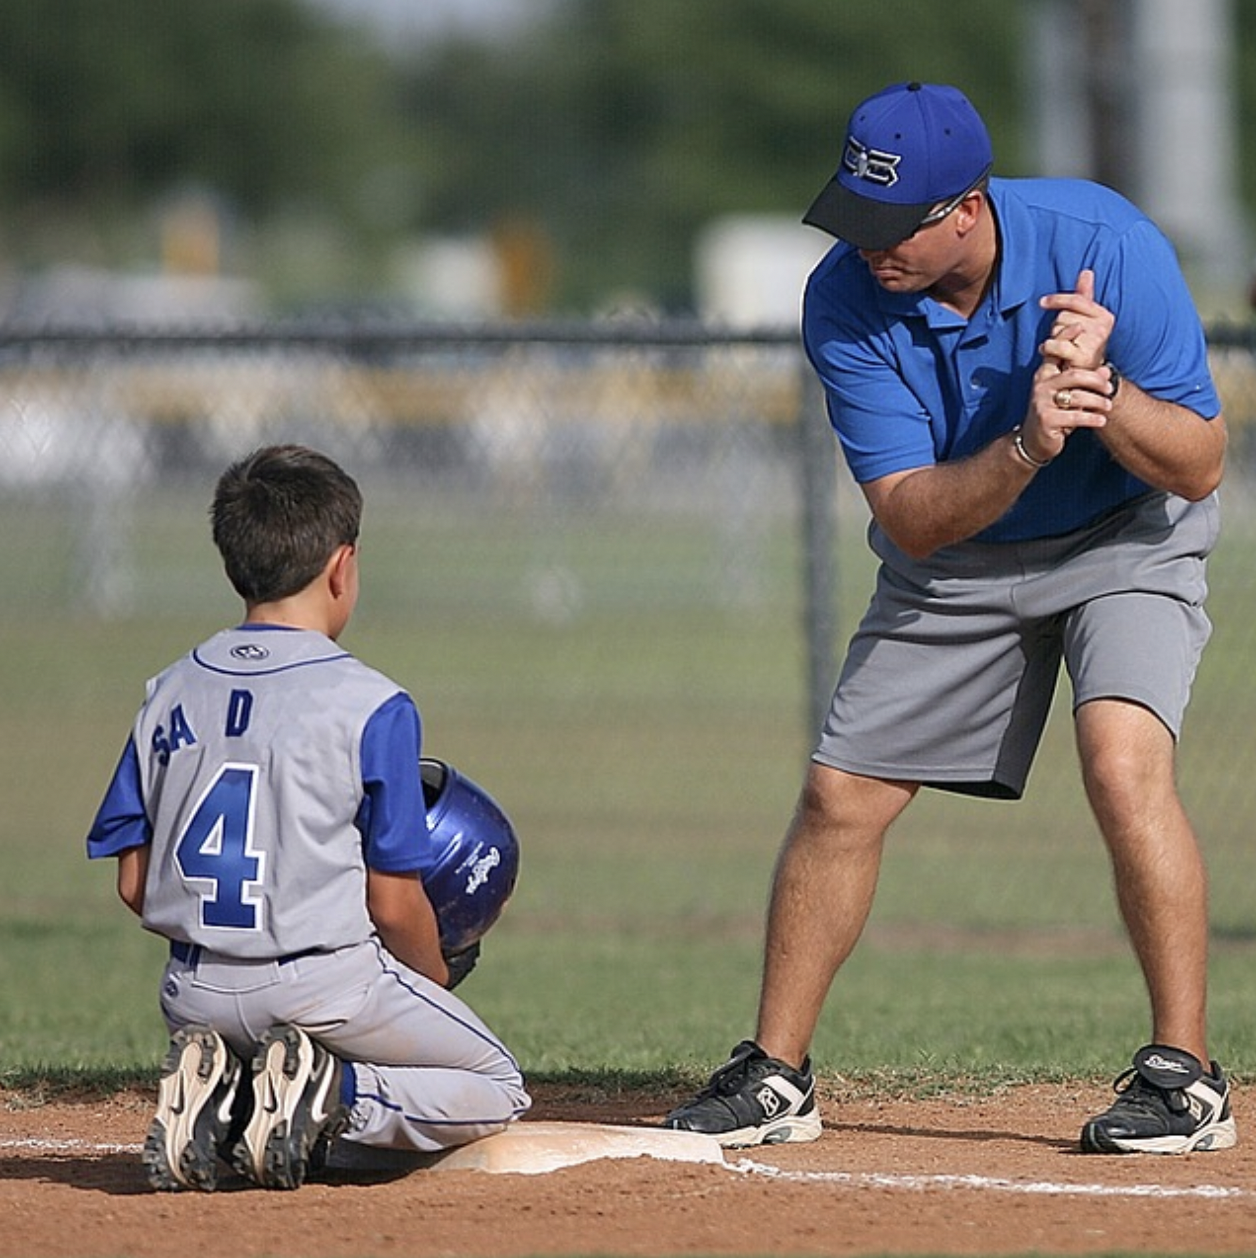 Want To Teach Your Kid How To Play Baseball? Here's What You'll Need